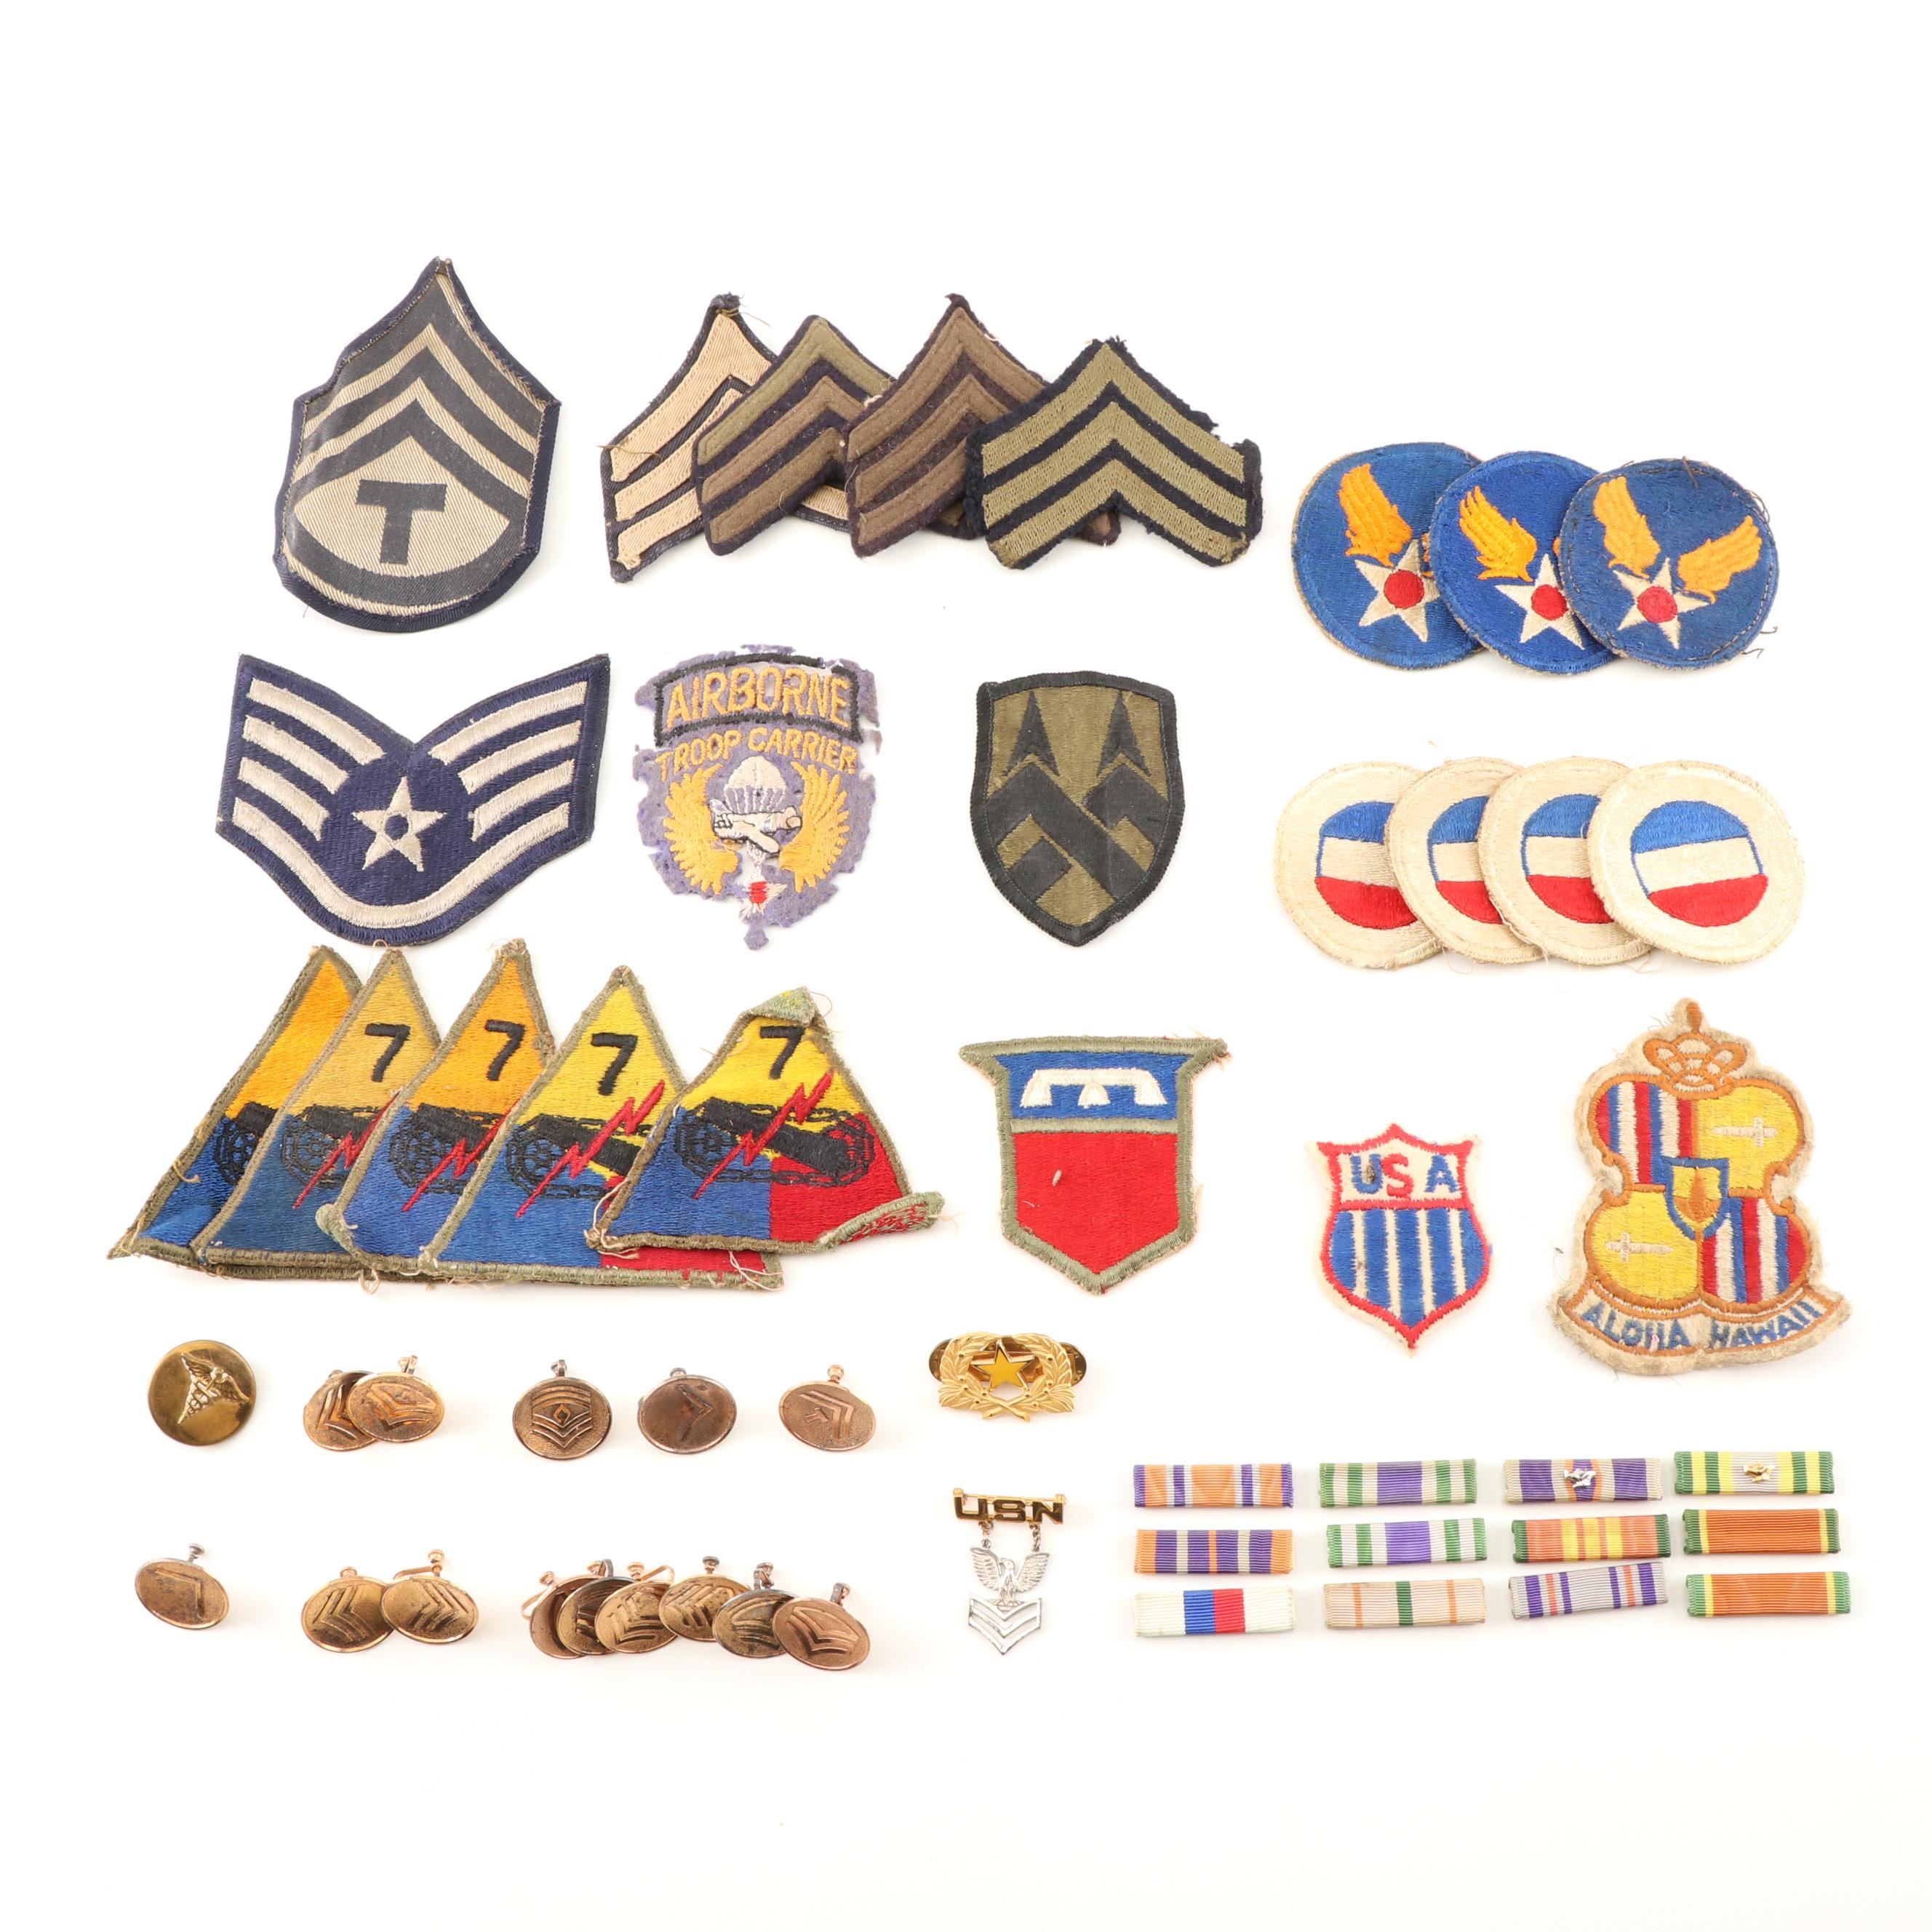 Military Uniform Patches, Insignia, and Pins